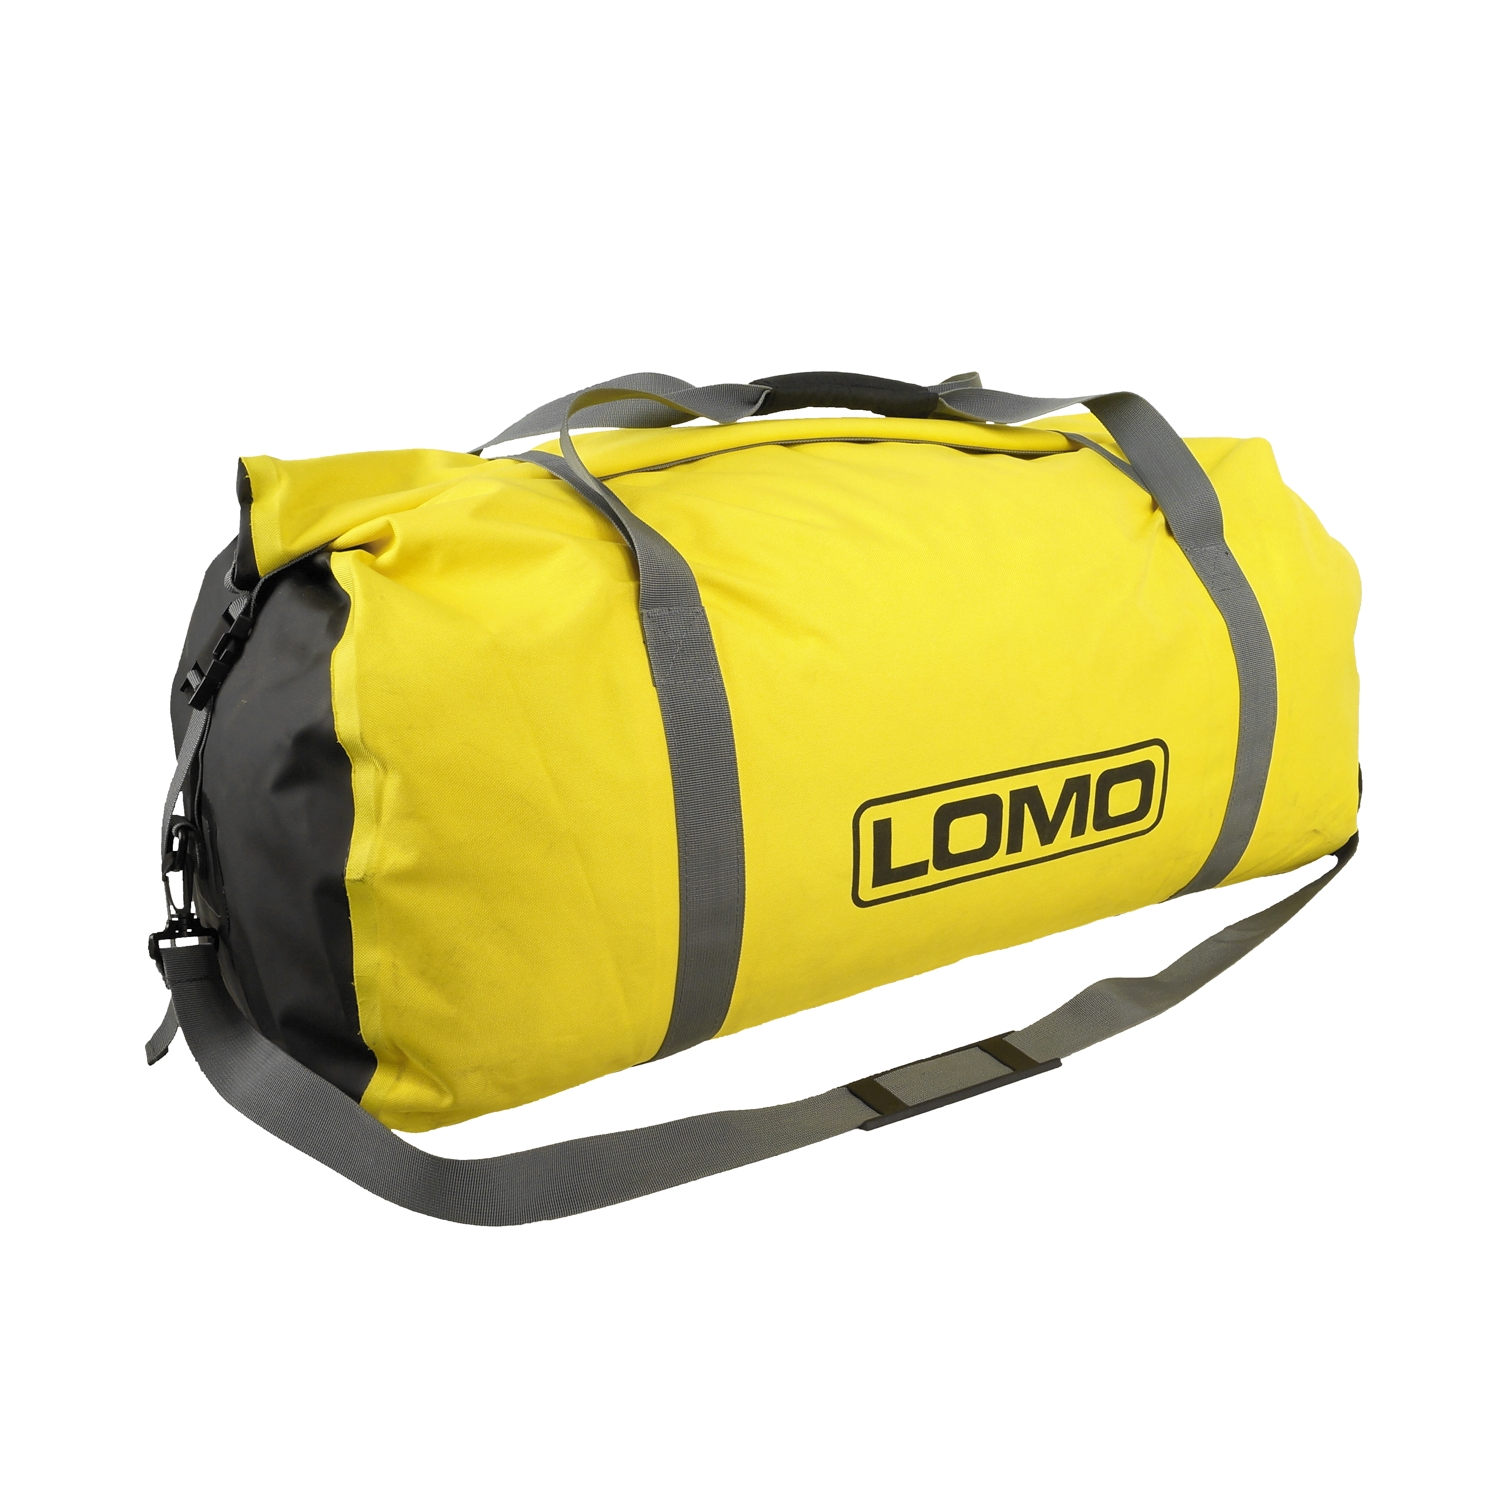 40L Dry Bag Holdall - Yellow f10fb0a3c